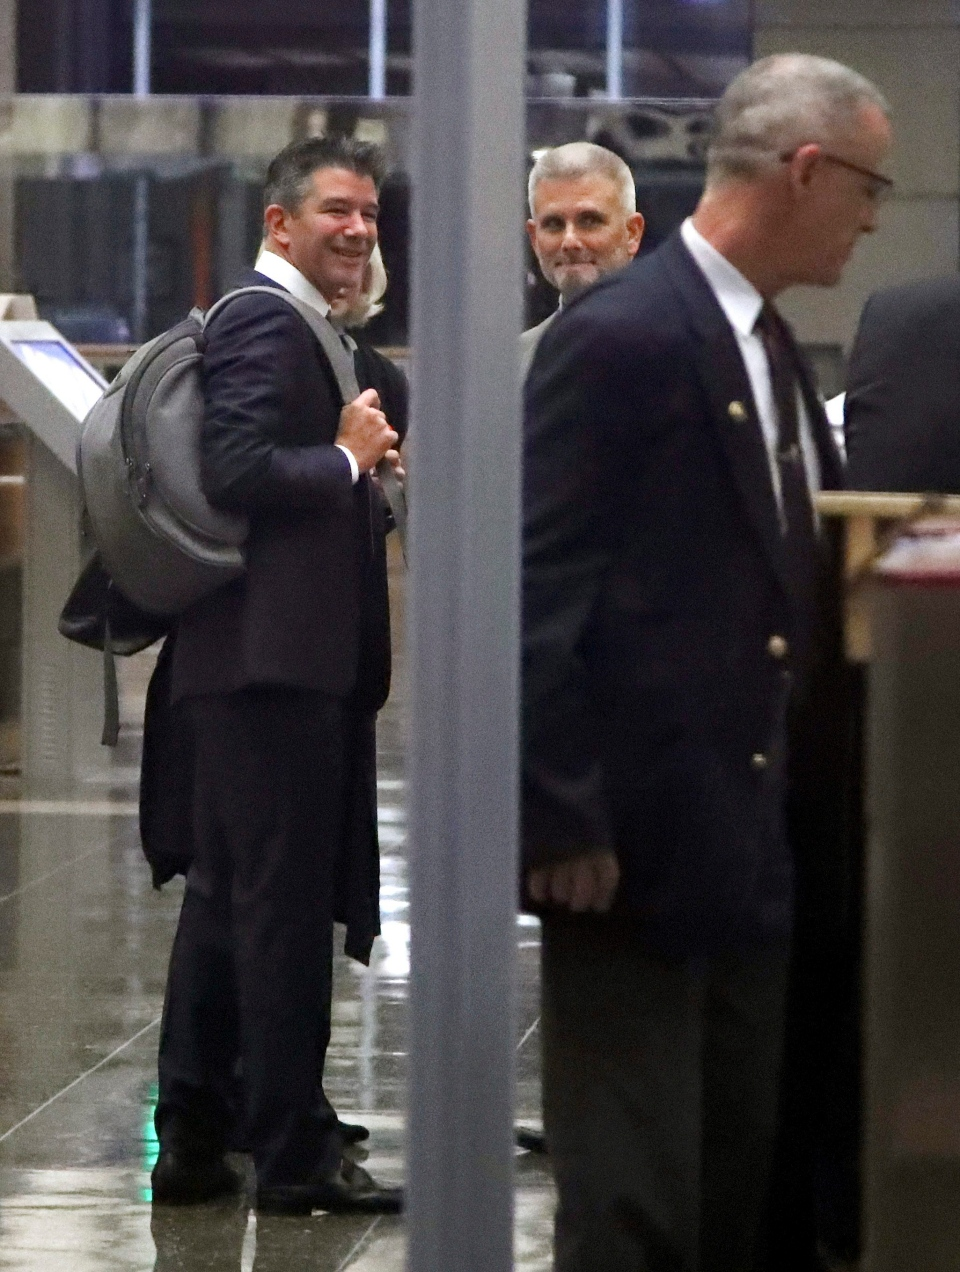 Former Uber CEO Travis Kalanick, left, goes through a security line upon entering a federal courthouse on Wednesday, Feb. 7, 2018, in San Francisco. (AP / Ben Margot)